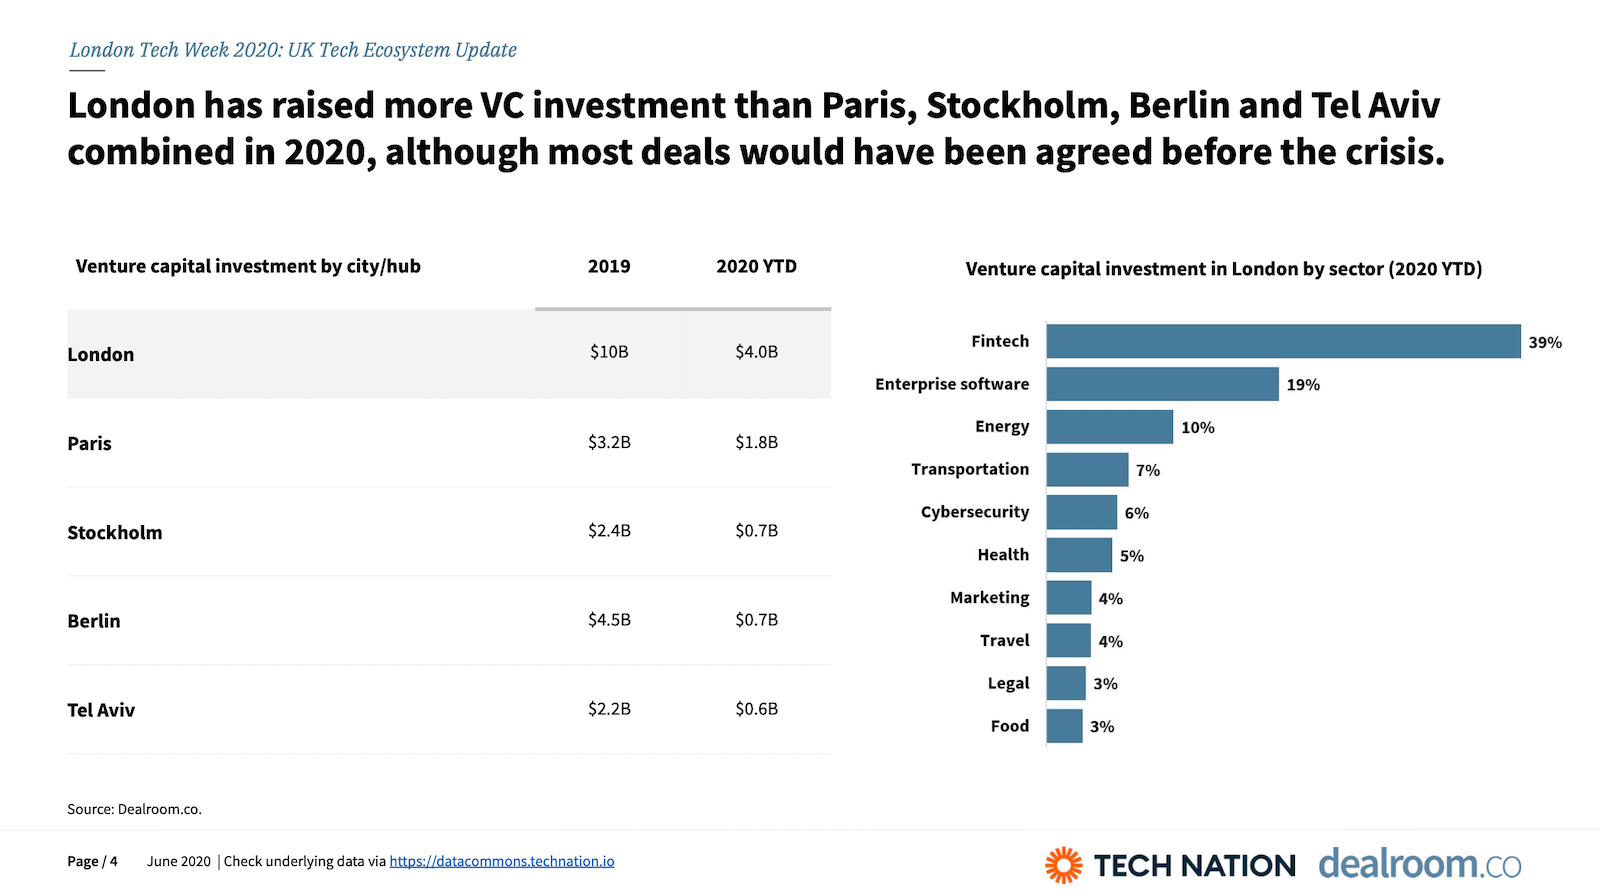 London has raised more VC investment than Paris, Stockholm, Berlin and Tel Aviv combined in 2020, although most deals would have been agreed before the crisis.